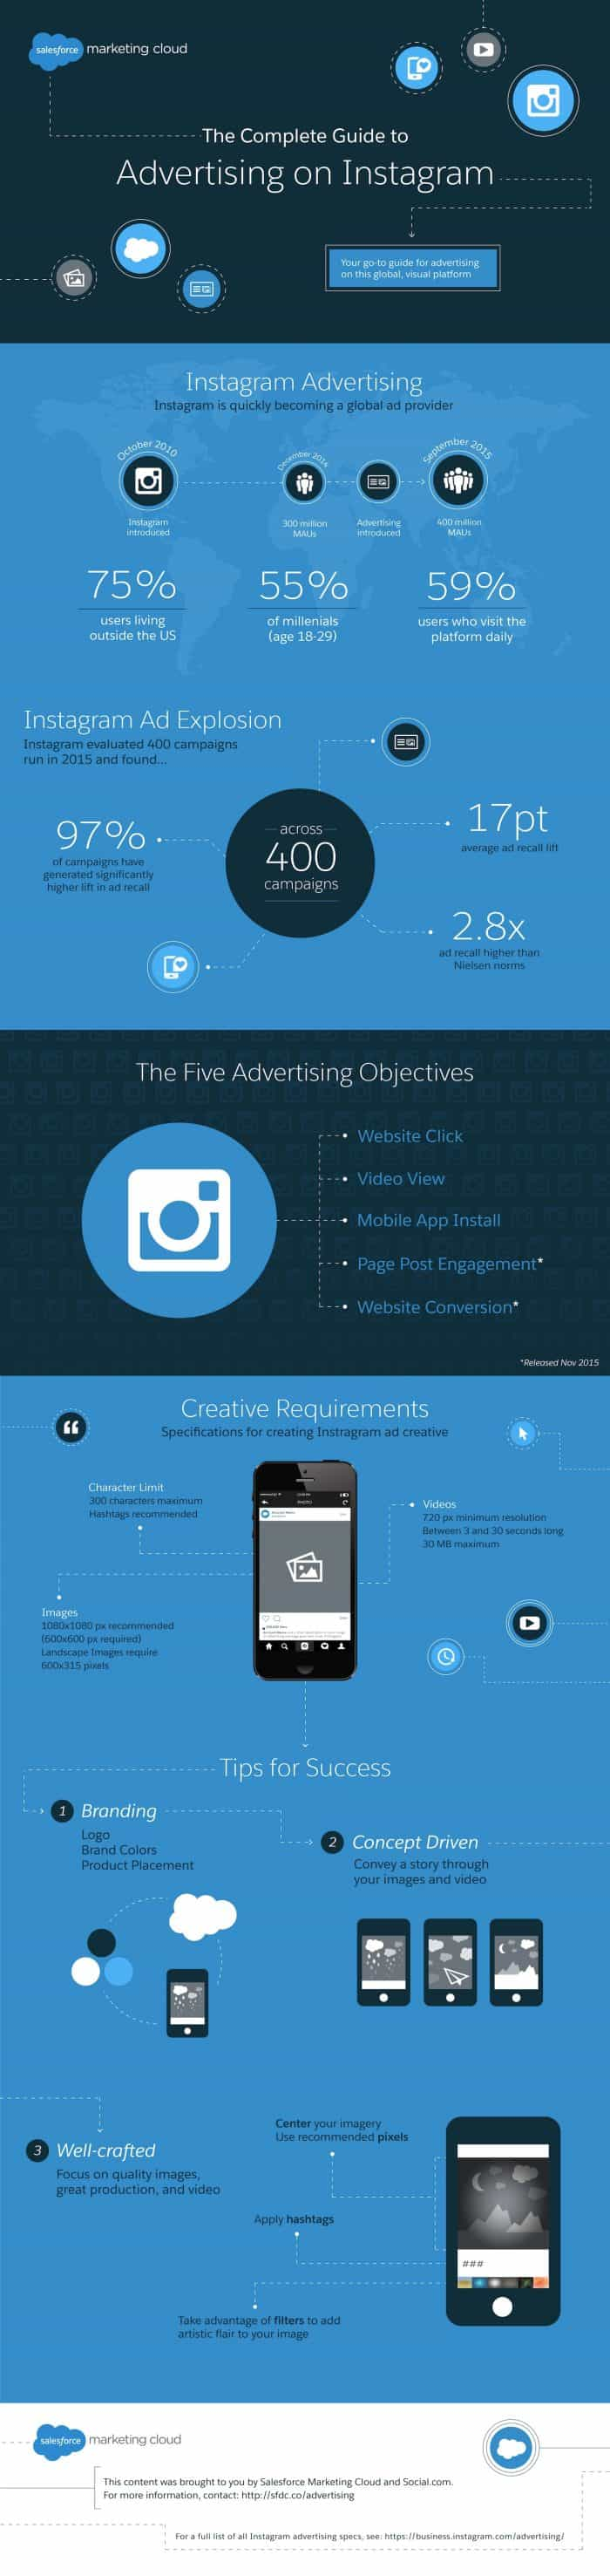 Complete guide to Advertising on Instagram